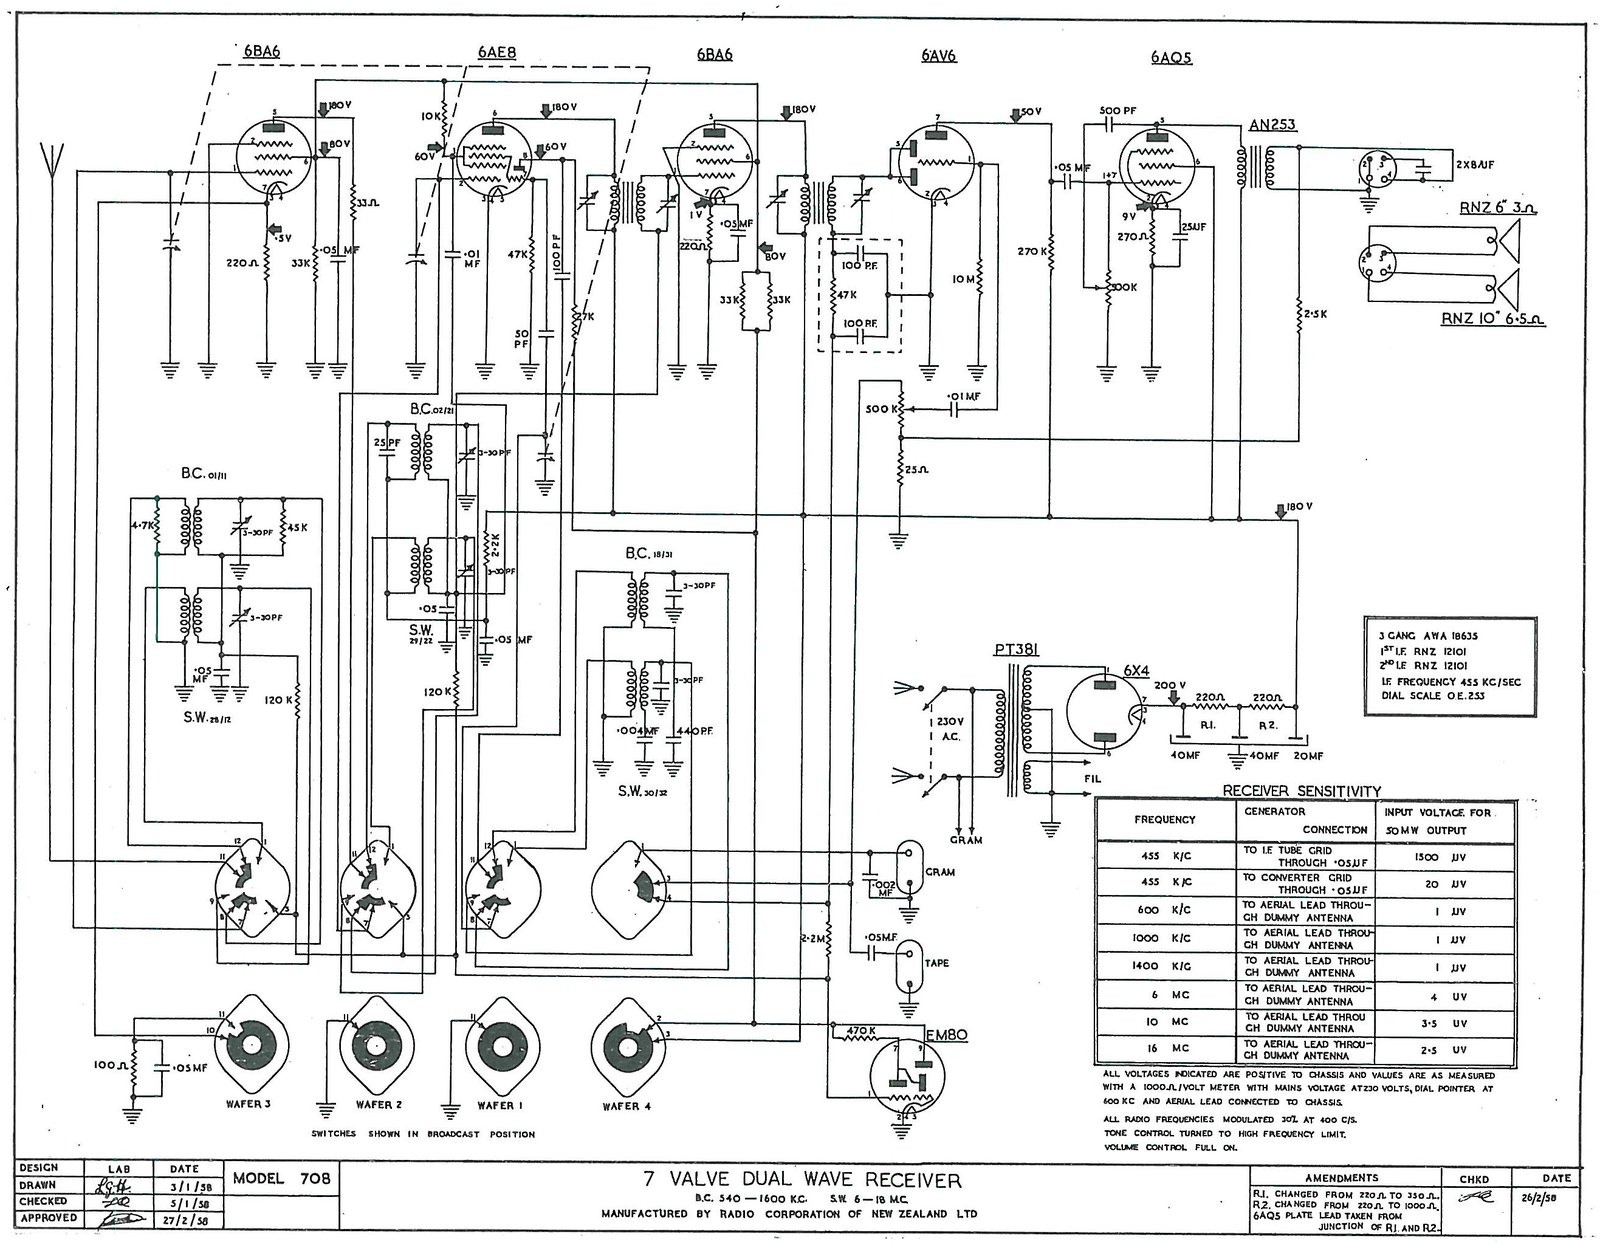 1957 Columbus model 708 Schematic